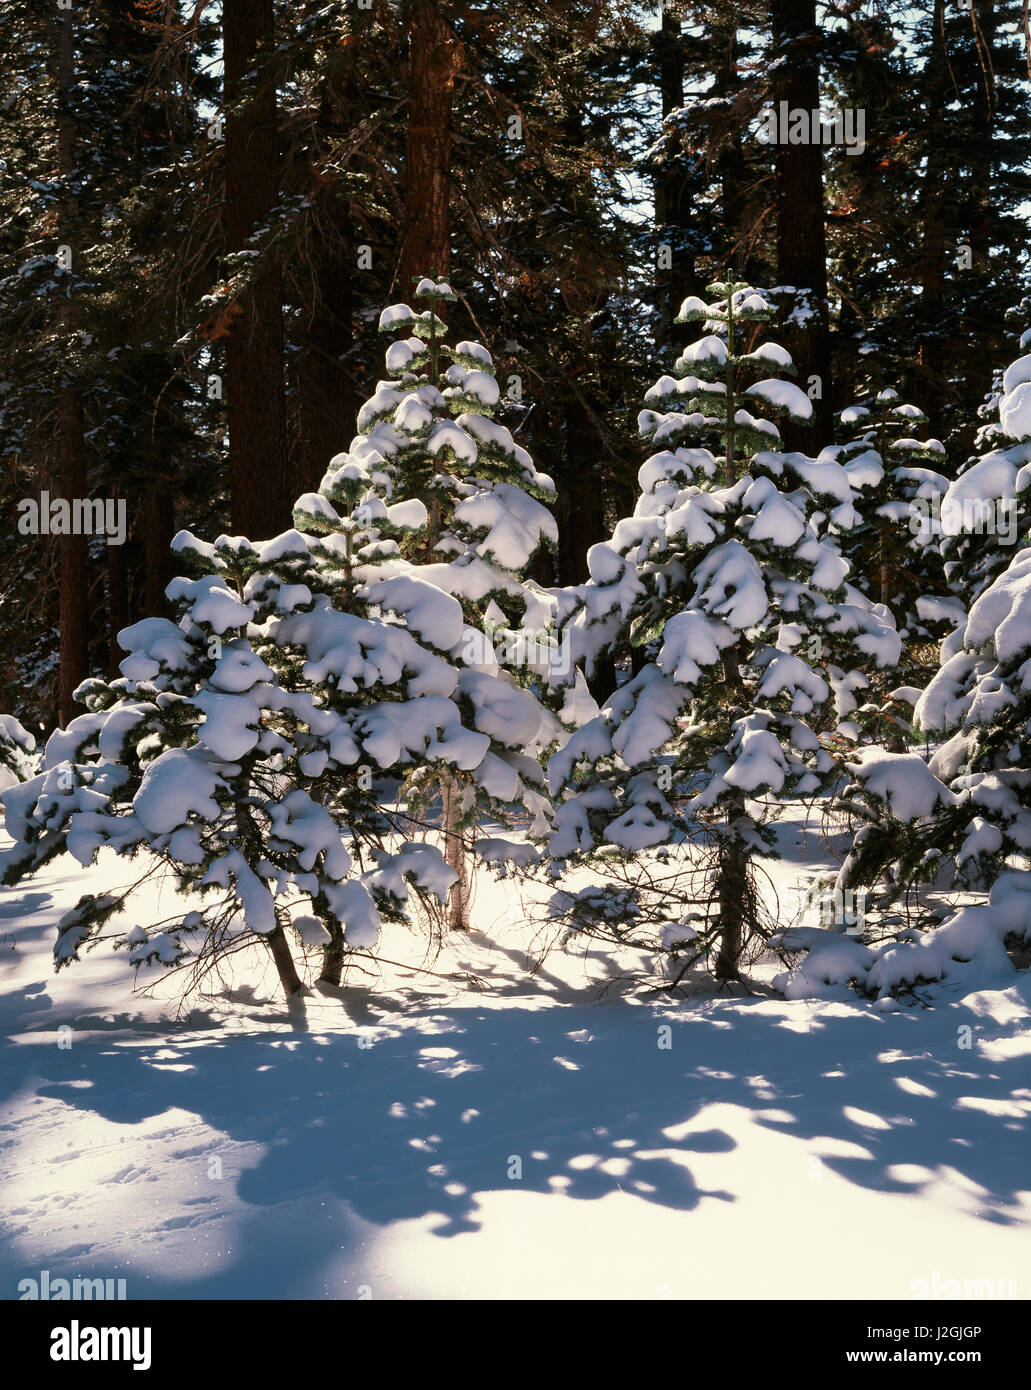 USA, California, Sierra Nevada Mountains, Red Fir Trees (Abies magnifica) and fresh Snow in the High Sierra. (Large - Stock Image